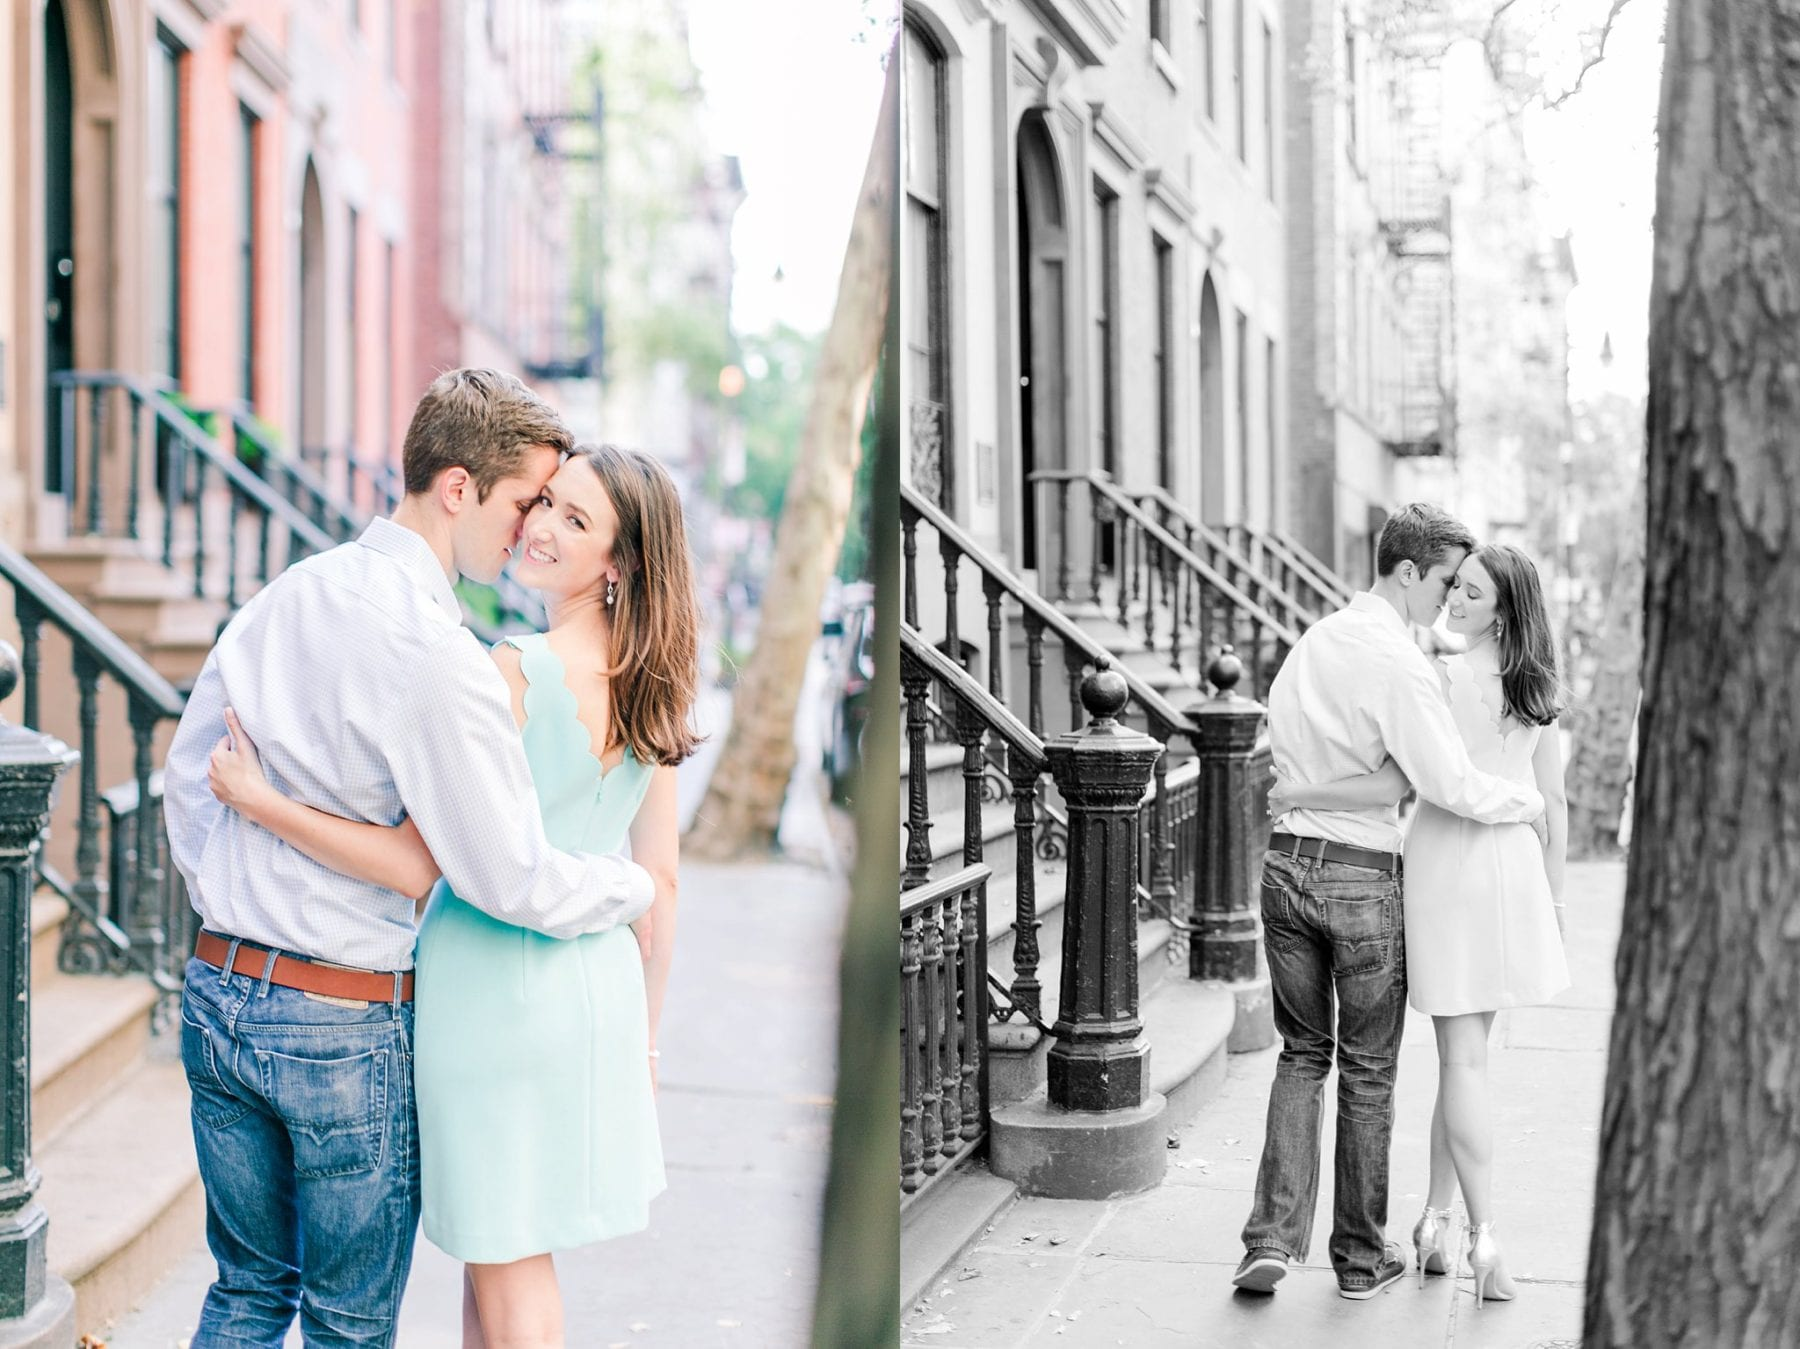 West Village Central Park Engagement Photos NYC Wedding Photographer Megan Kelsey Photography-128.jpg